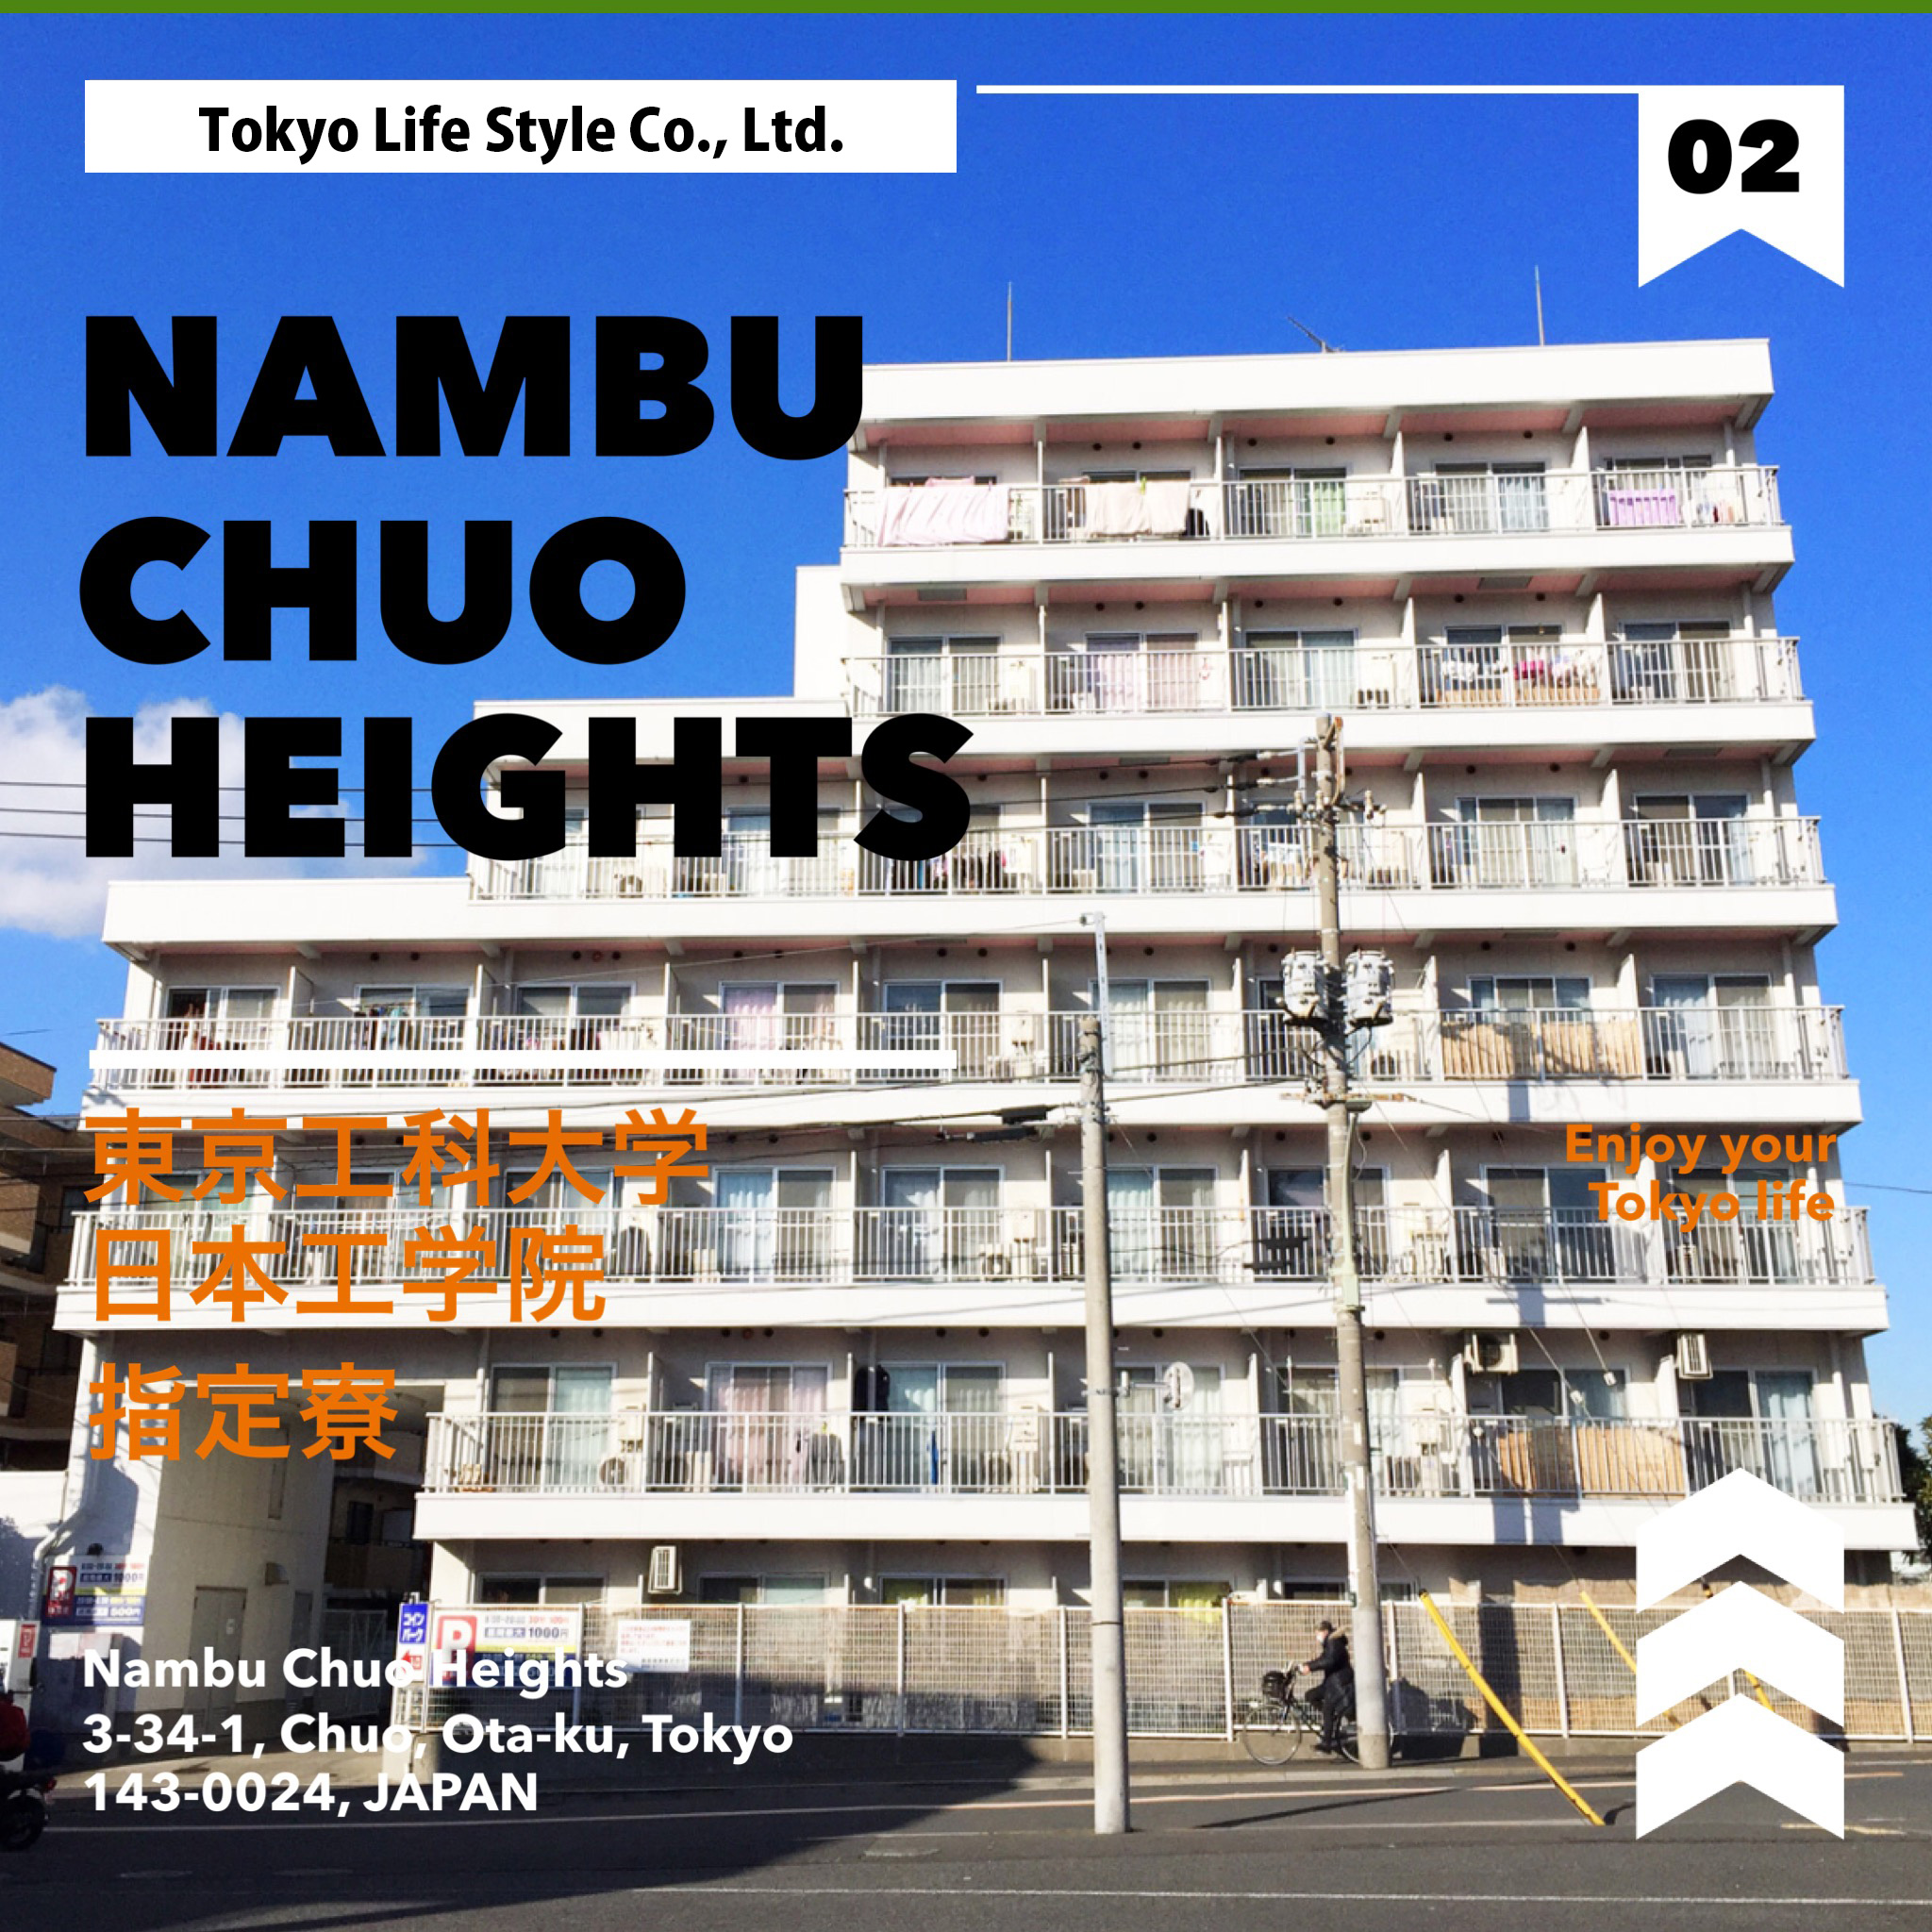 Nambu Chuo Hights